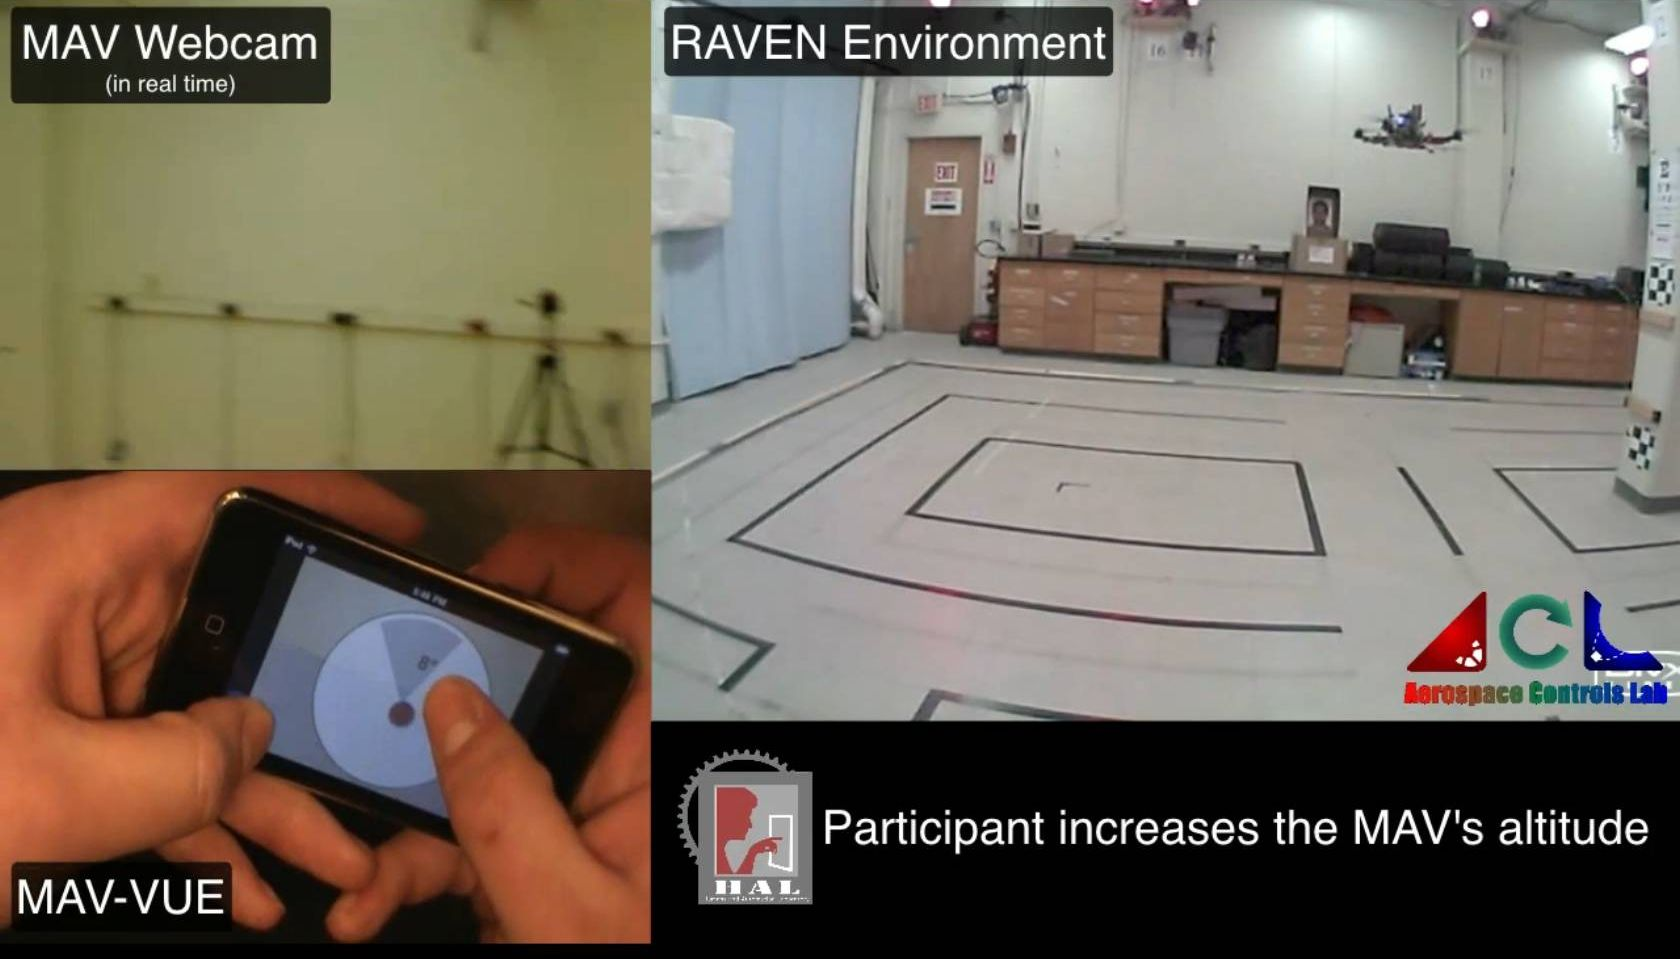 MIT Researcher Develops iPhone App to Easily Control Swarms of Aerial Drones